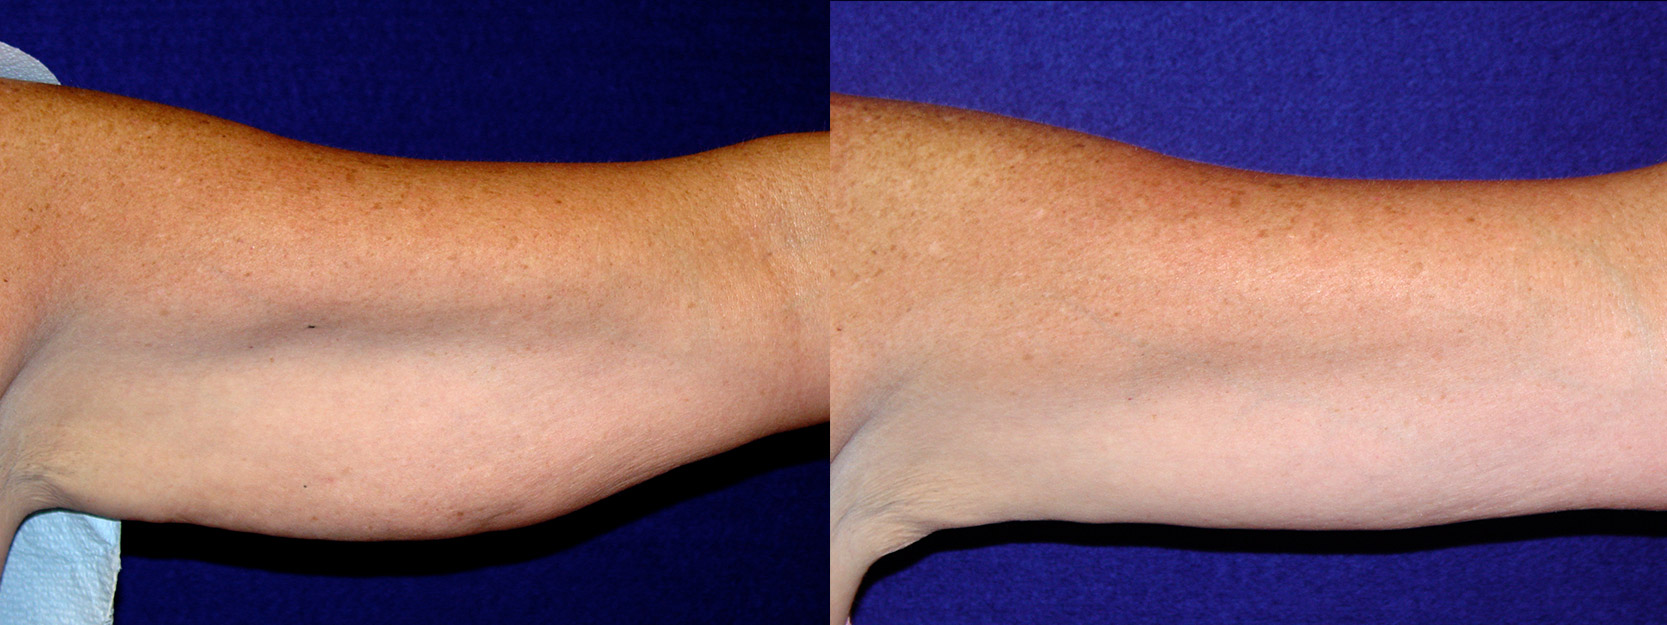 Frontal View - Left Arm - Arm Lift After Weight Loss